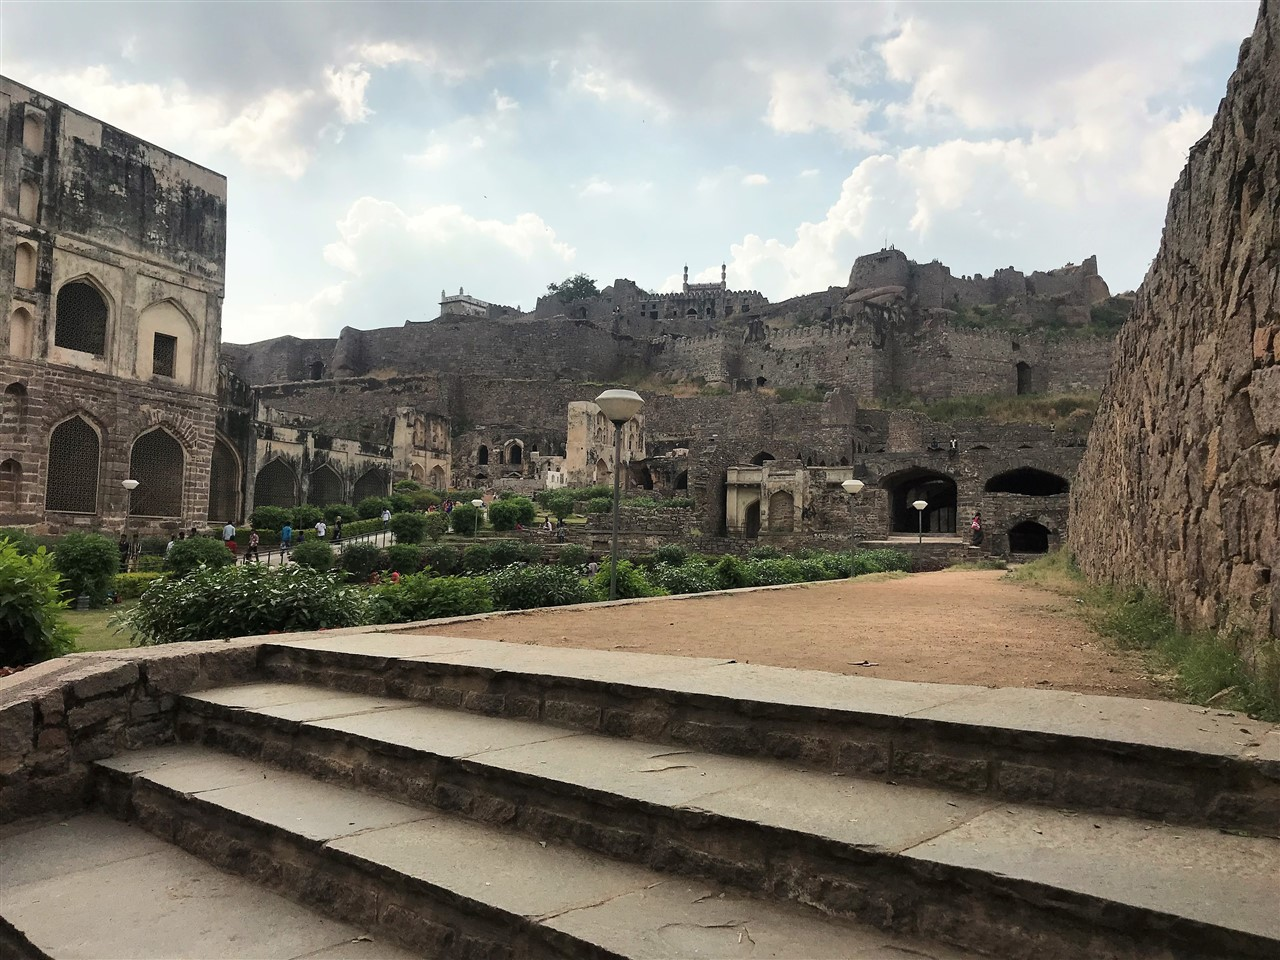 2017 11 17 60 Hyderabad Golkonda Fort.jpg